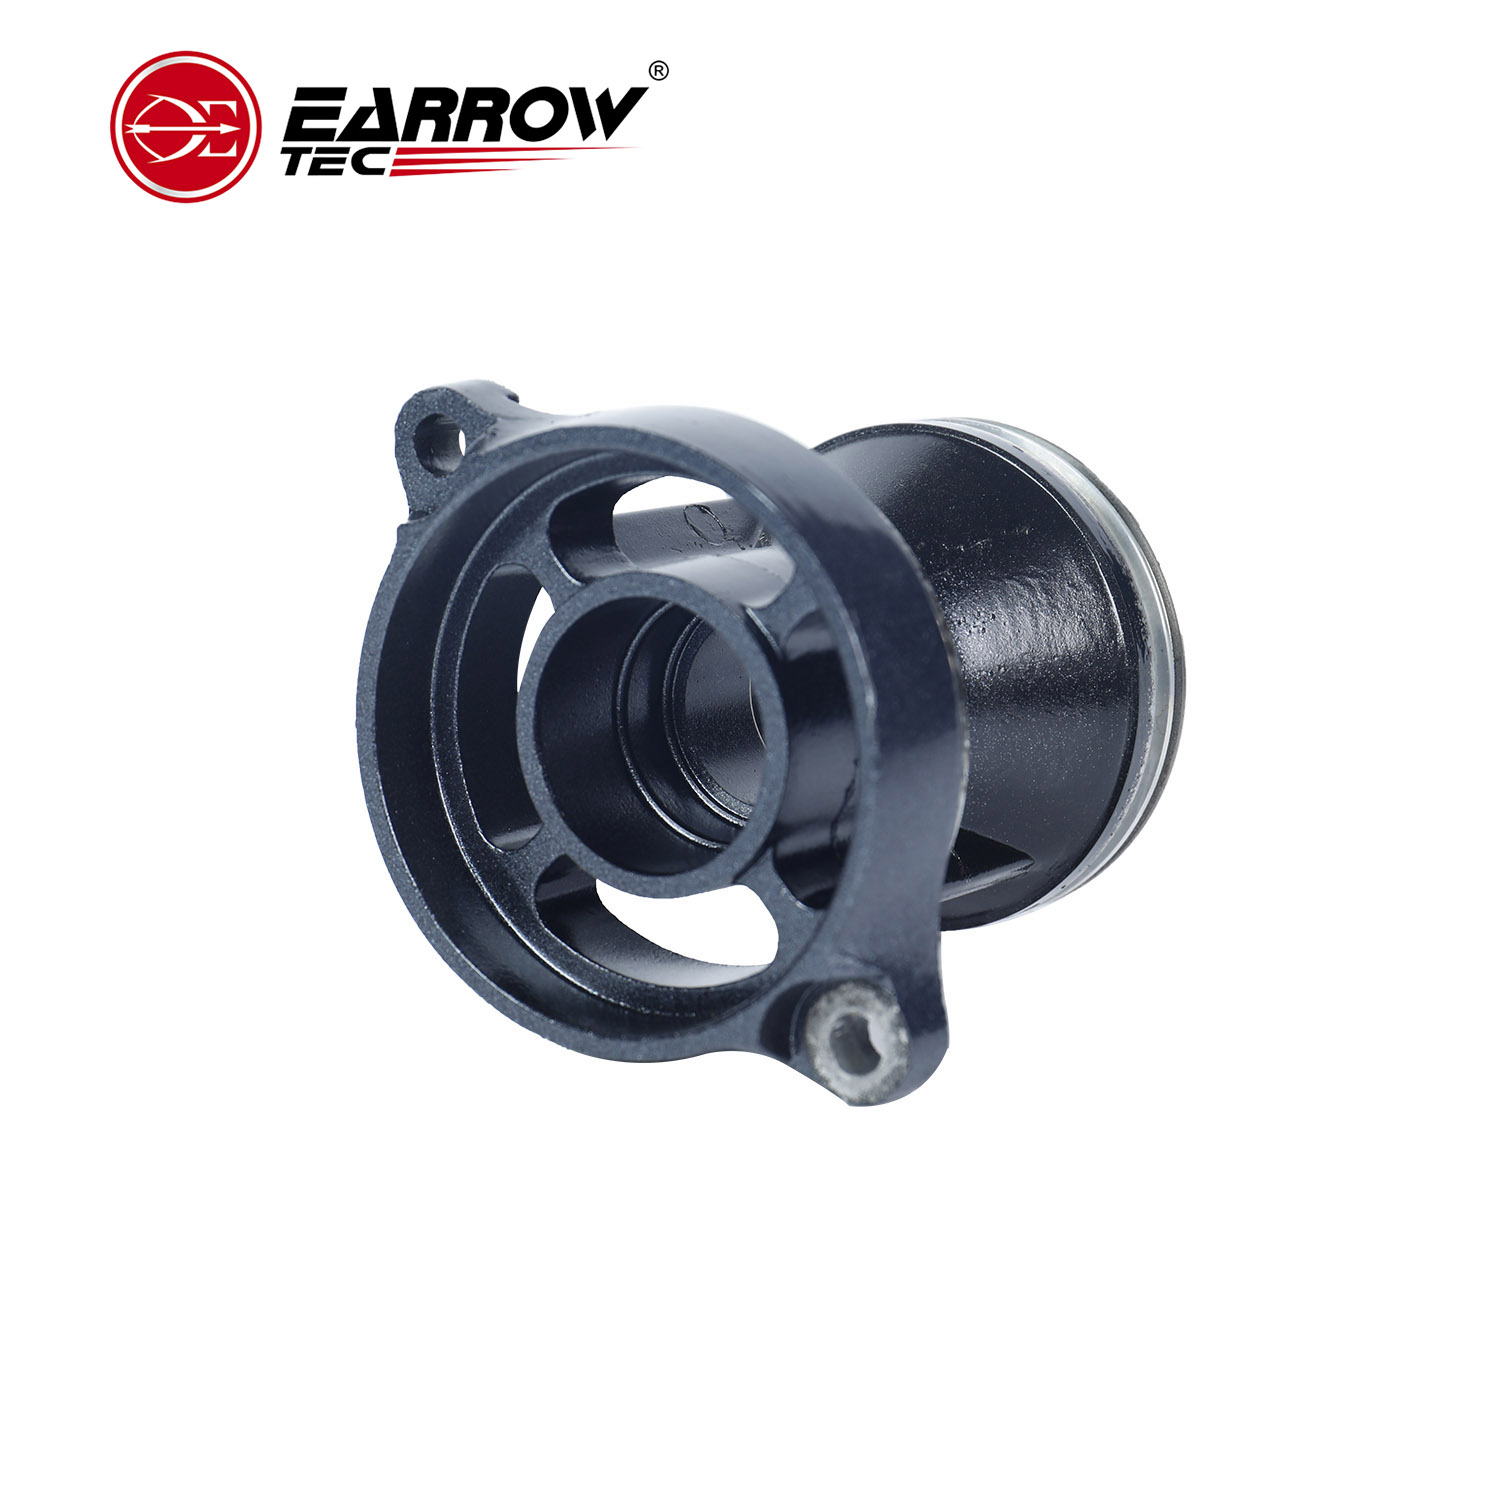 Lower Unit Cap for 2 Stroke Outboard Motor Engine Marine Products